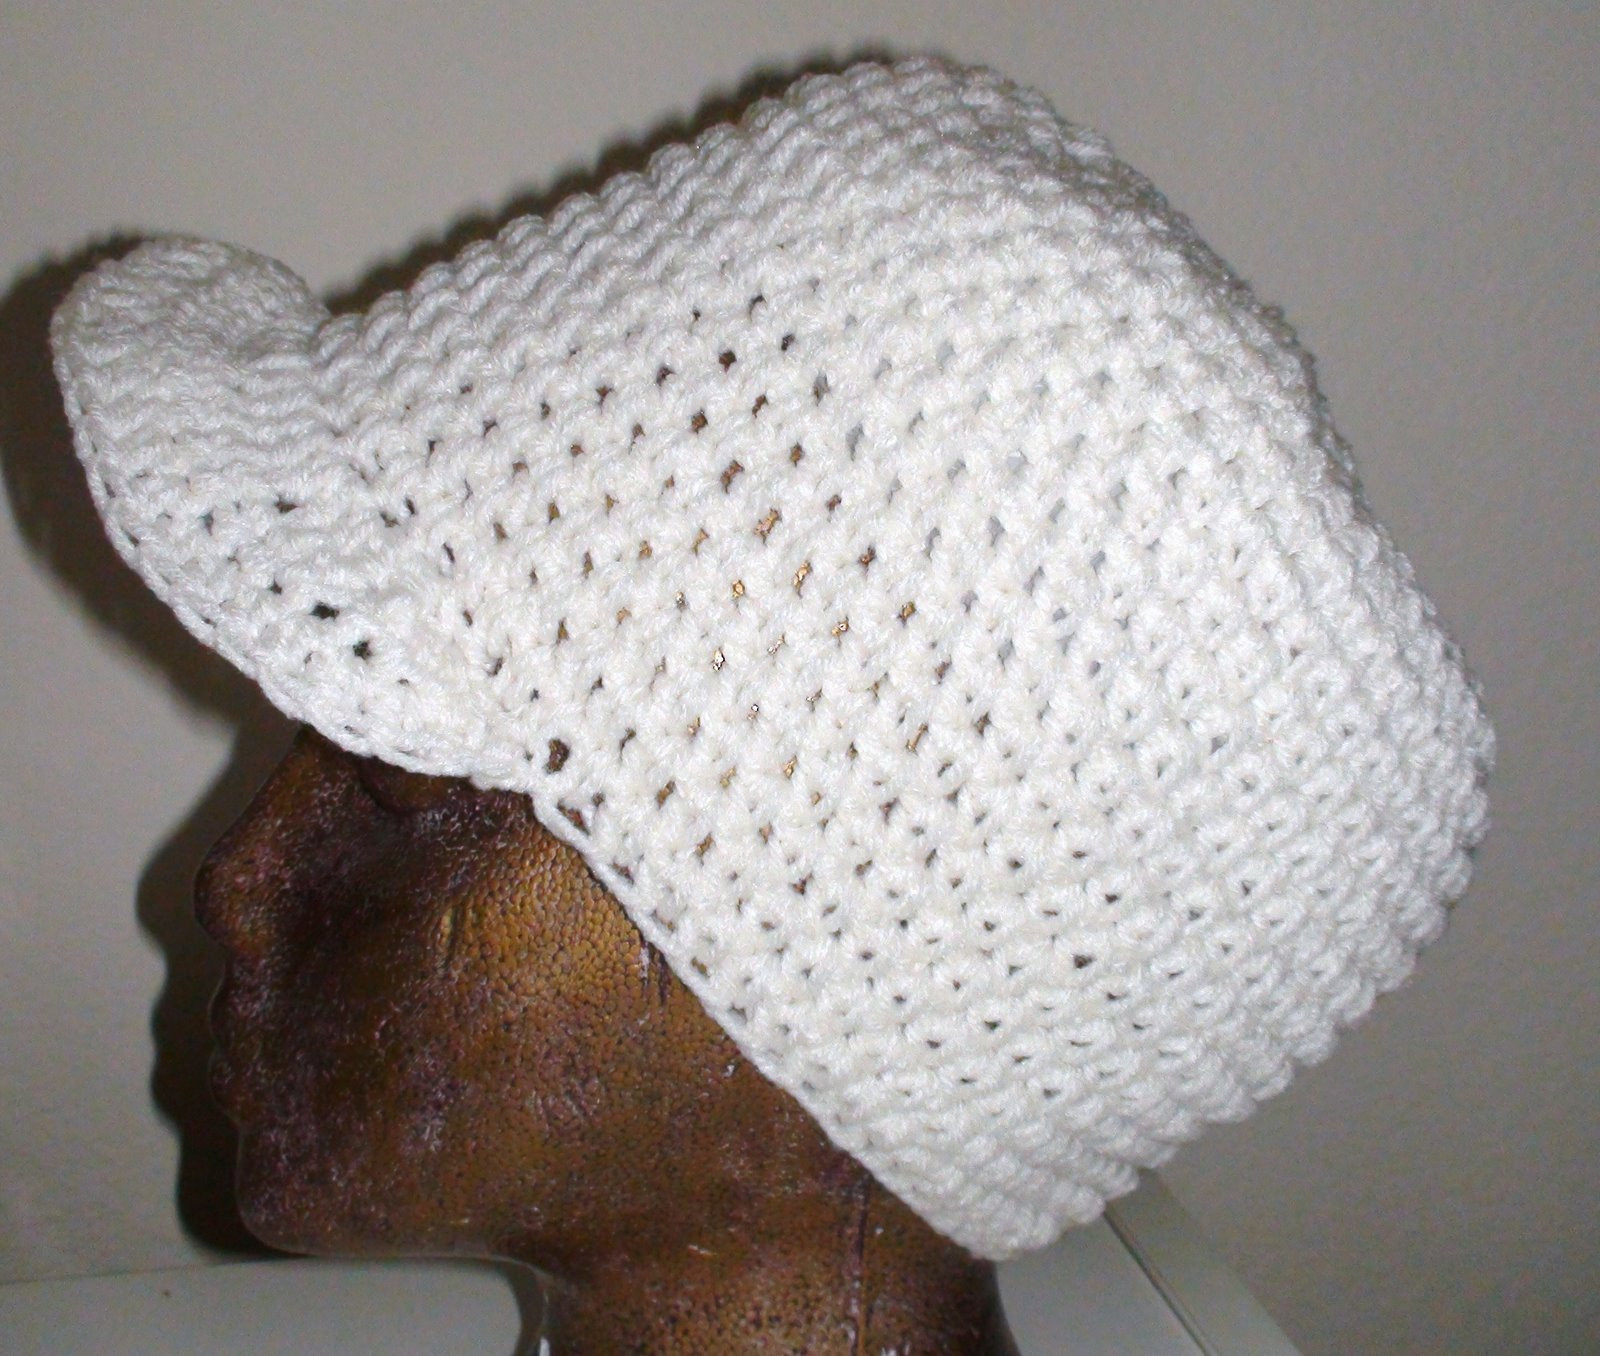 Single Crochet Patterns Best Of Beginning Crochet Stitches Crochet — Learn How to Crochet Of Single Crochet Patterns Elegant Tutorial Crochet sock Yarn Hat